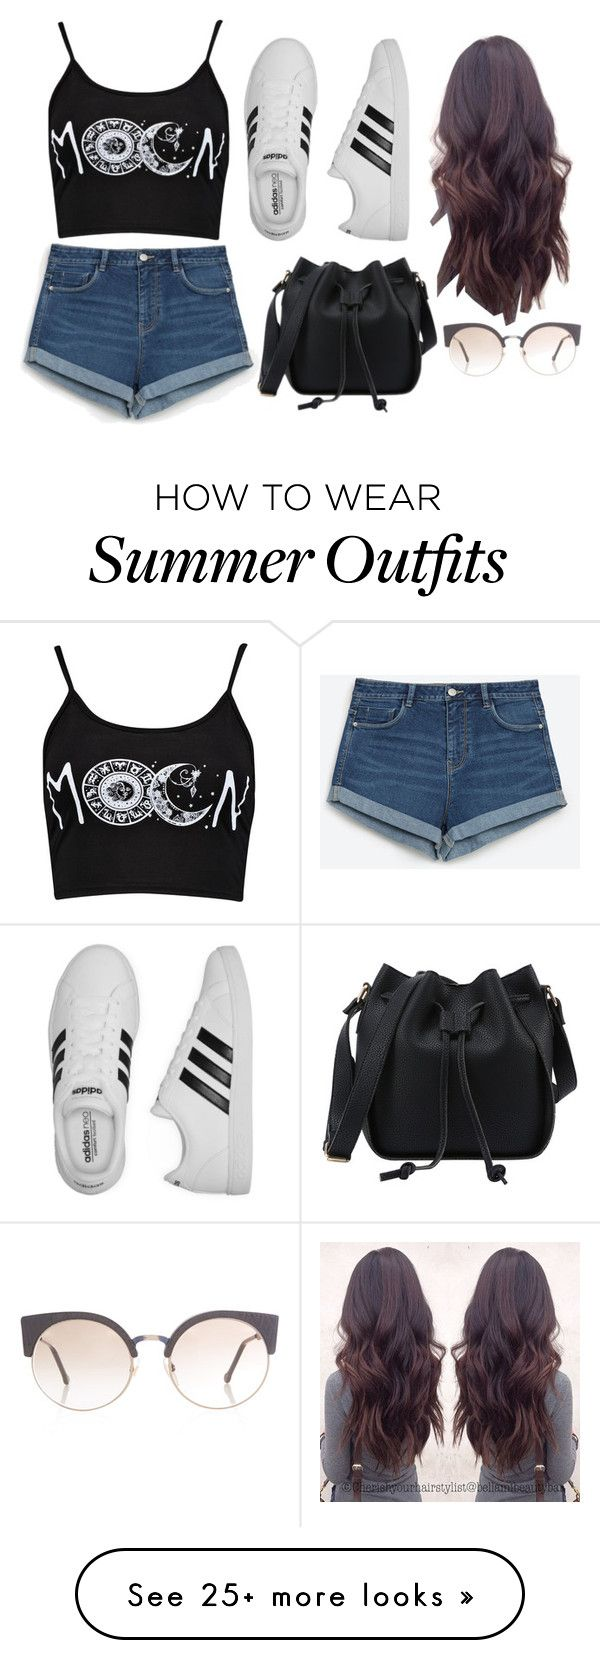 """Outfit 52"" by decemberbaby19 on Polyvore featuring Boohoo, Zara, adidas and RetroSuperFuture"